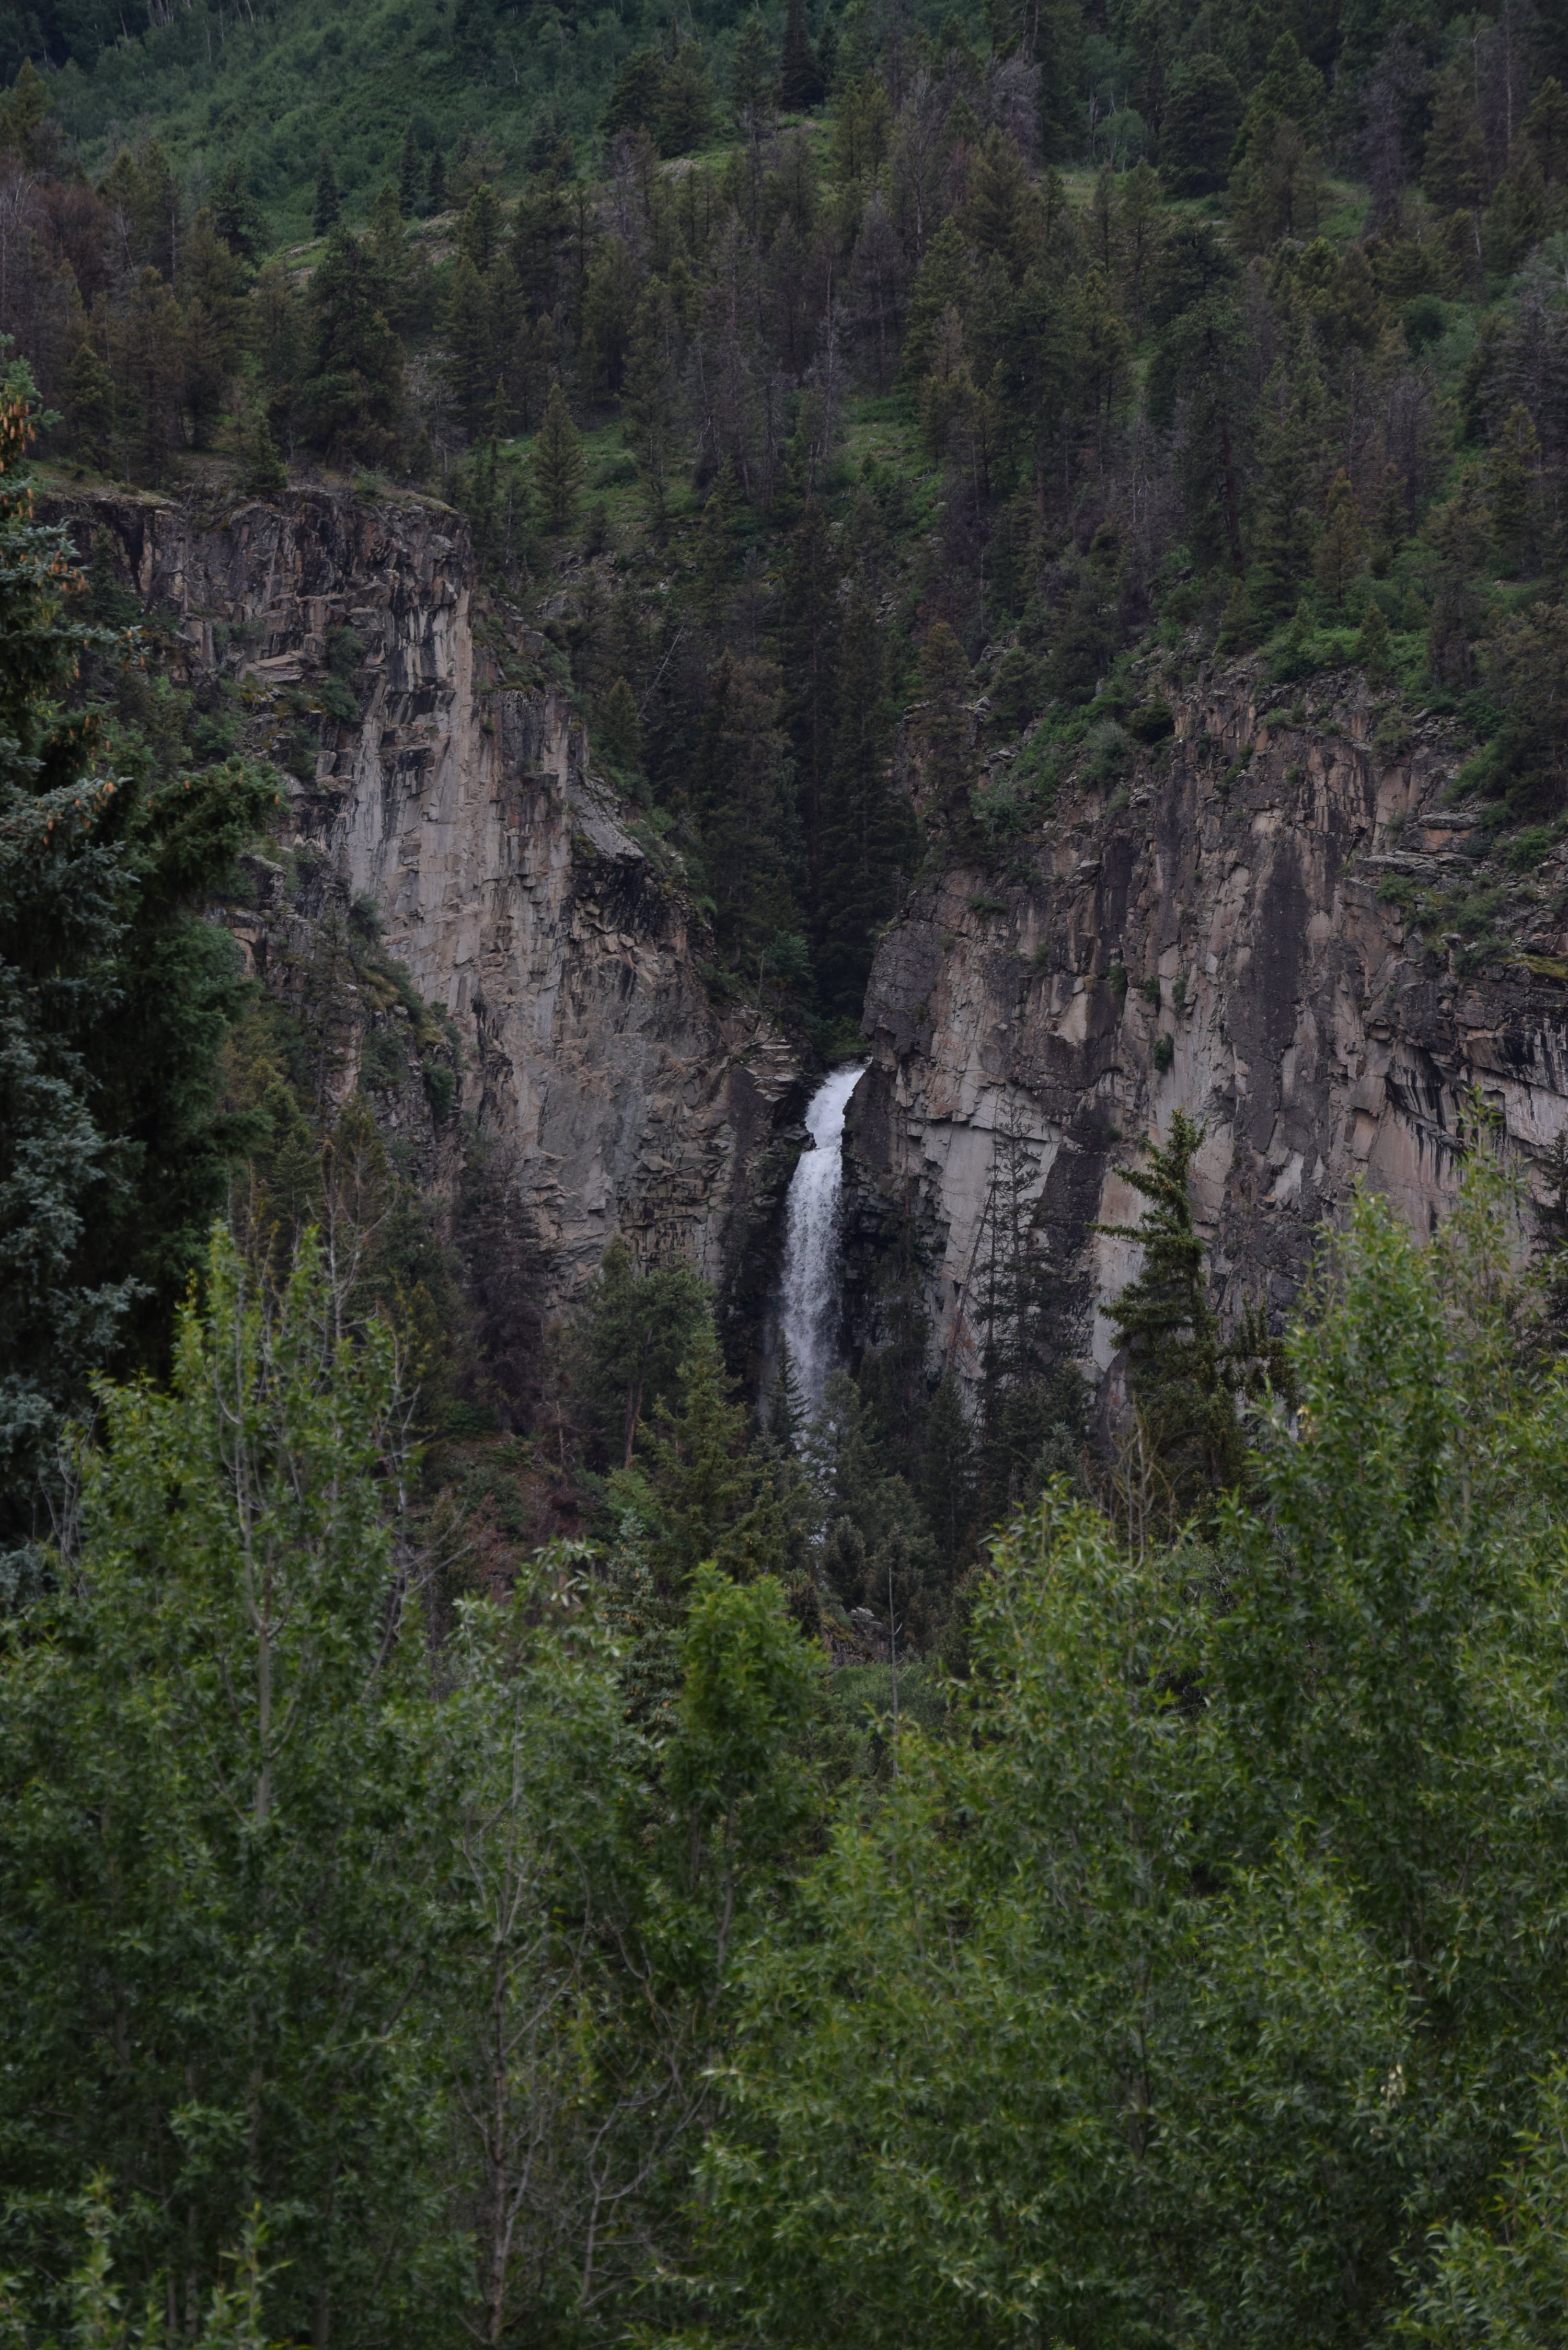 Waterfalls in Middle of Mountain